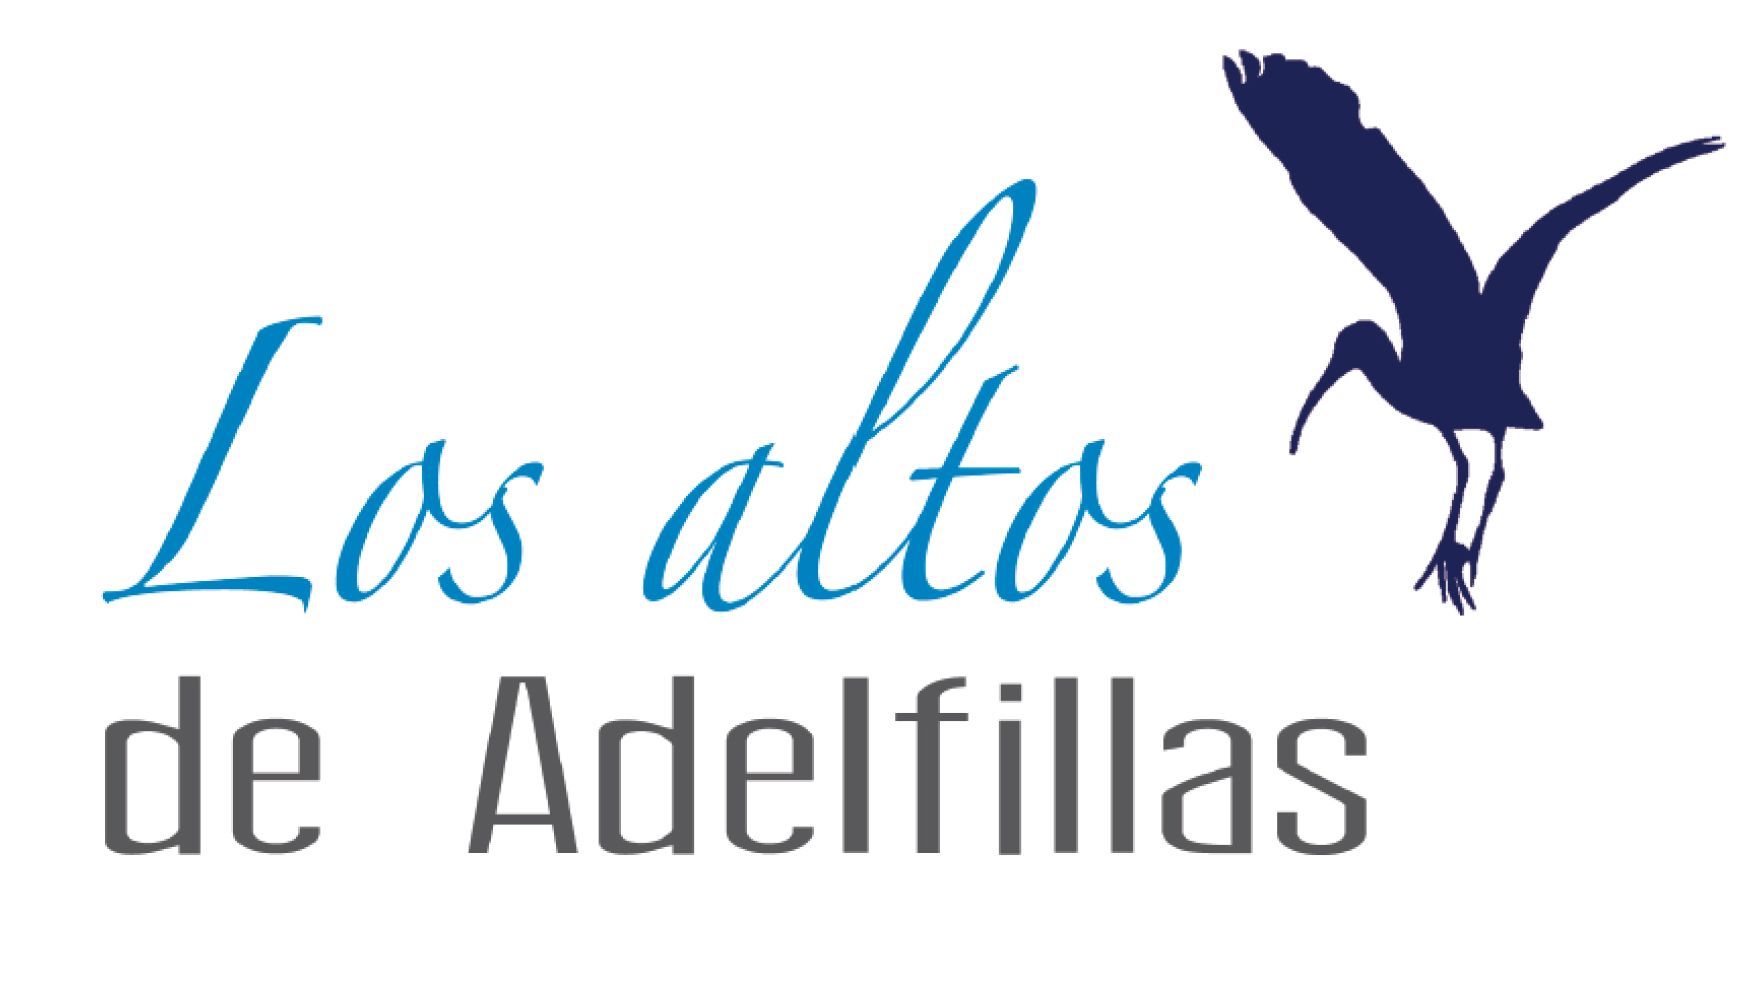 Los Altos de Adelfillas